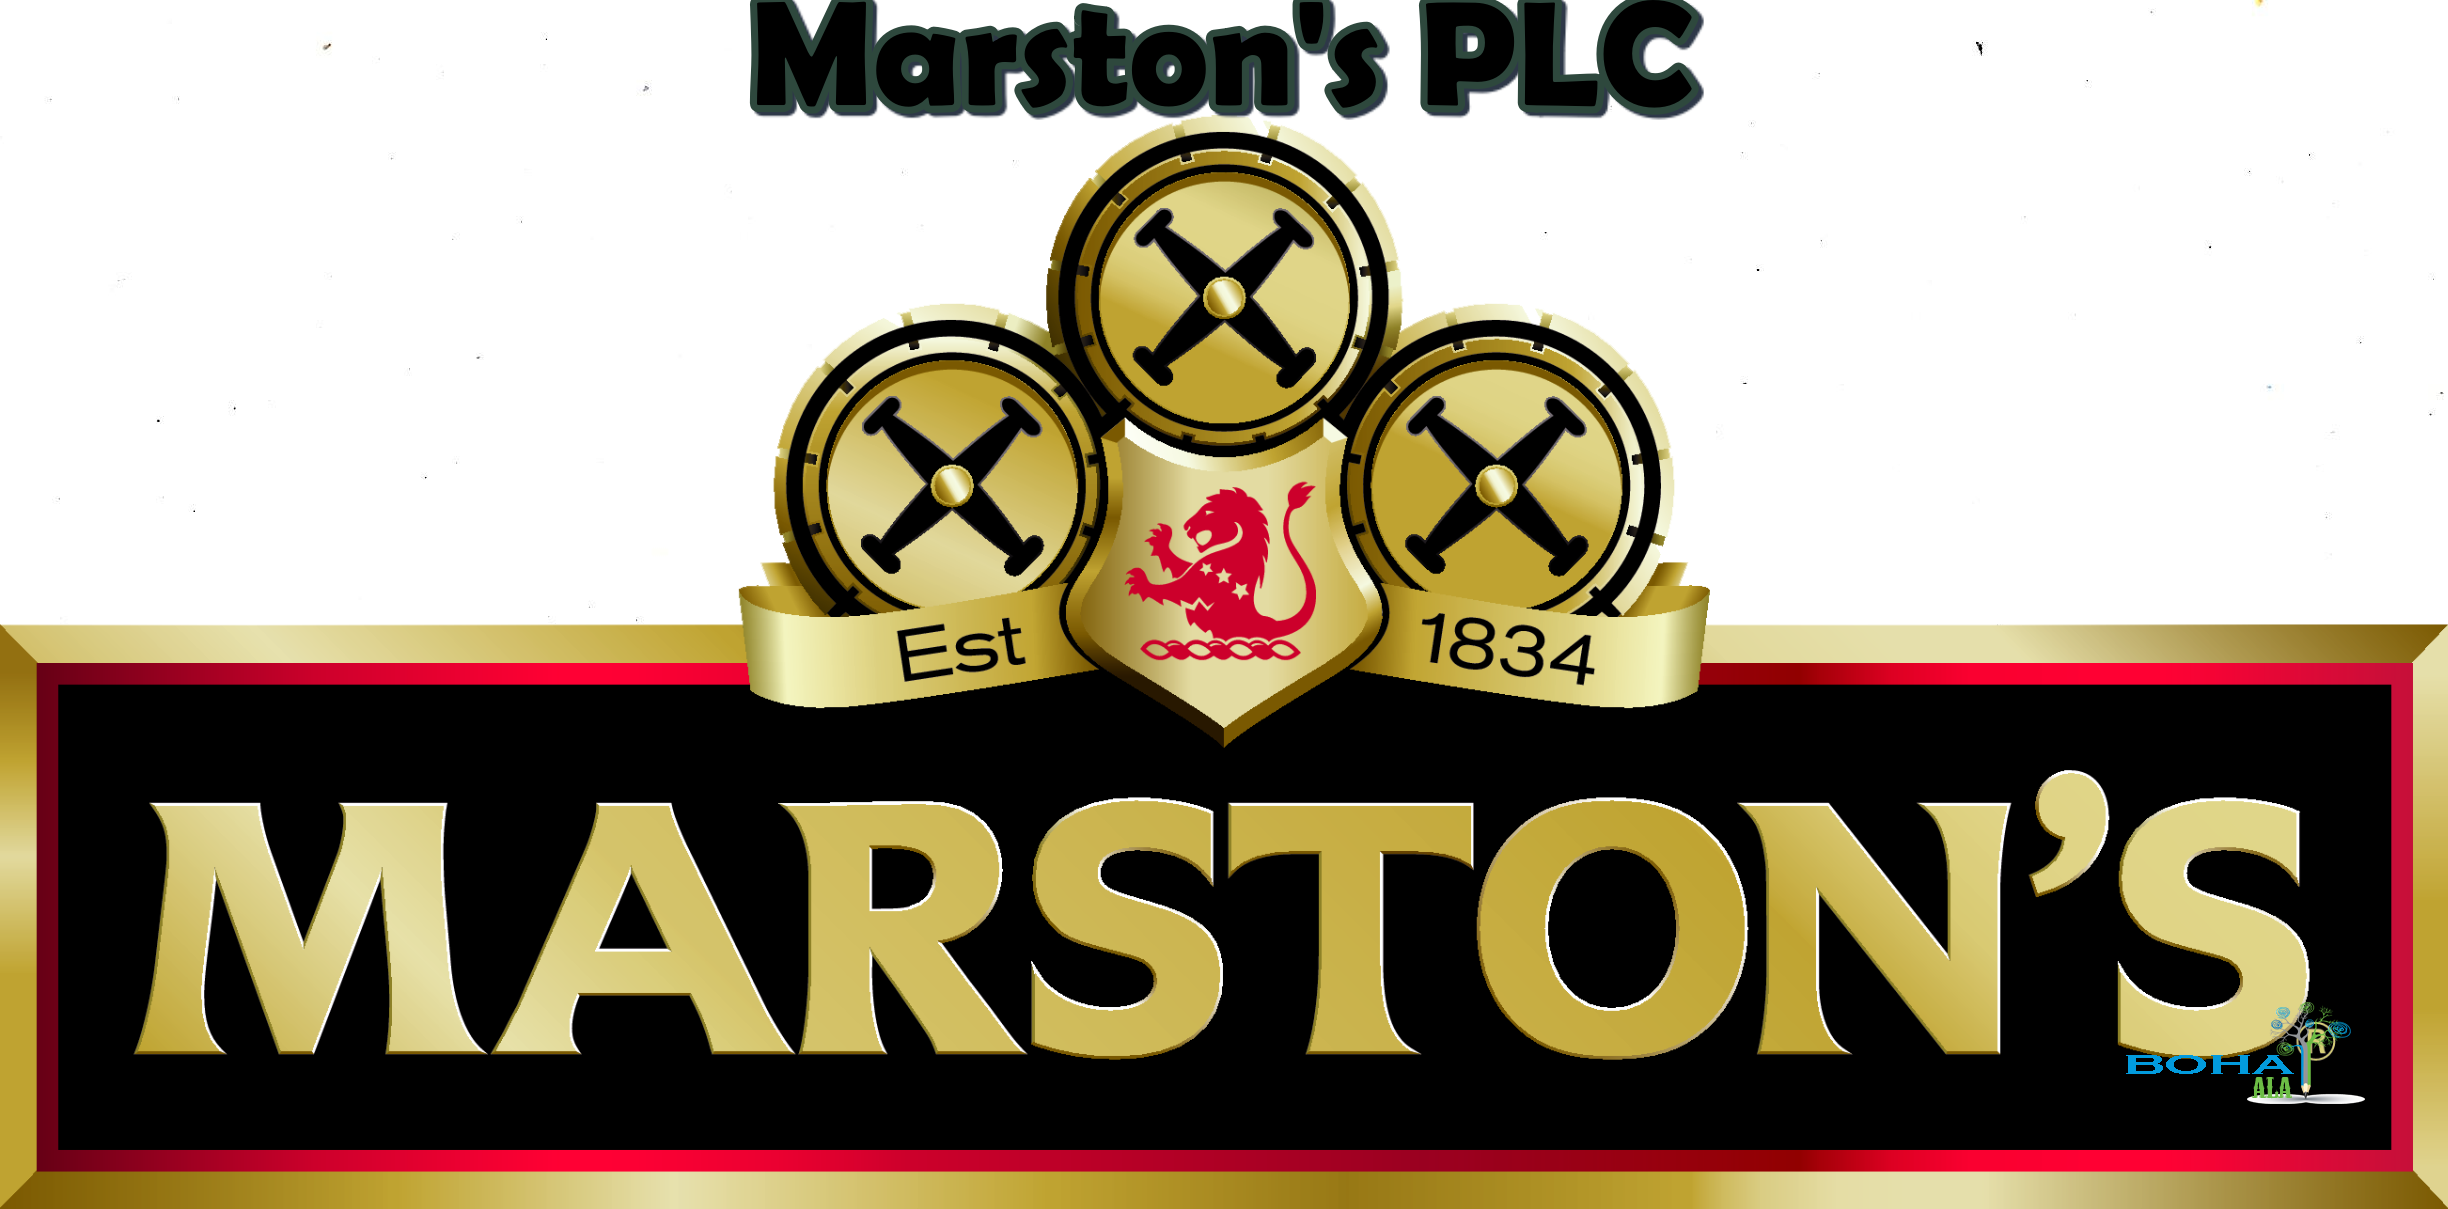 Marston's PLC UK Strategic Management Analysis Project Report